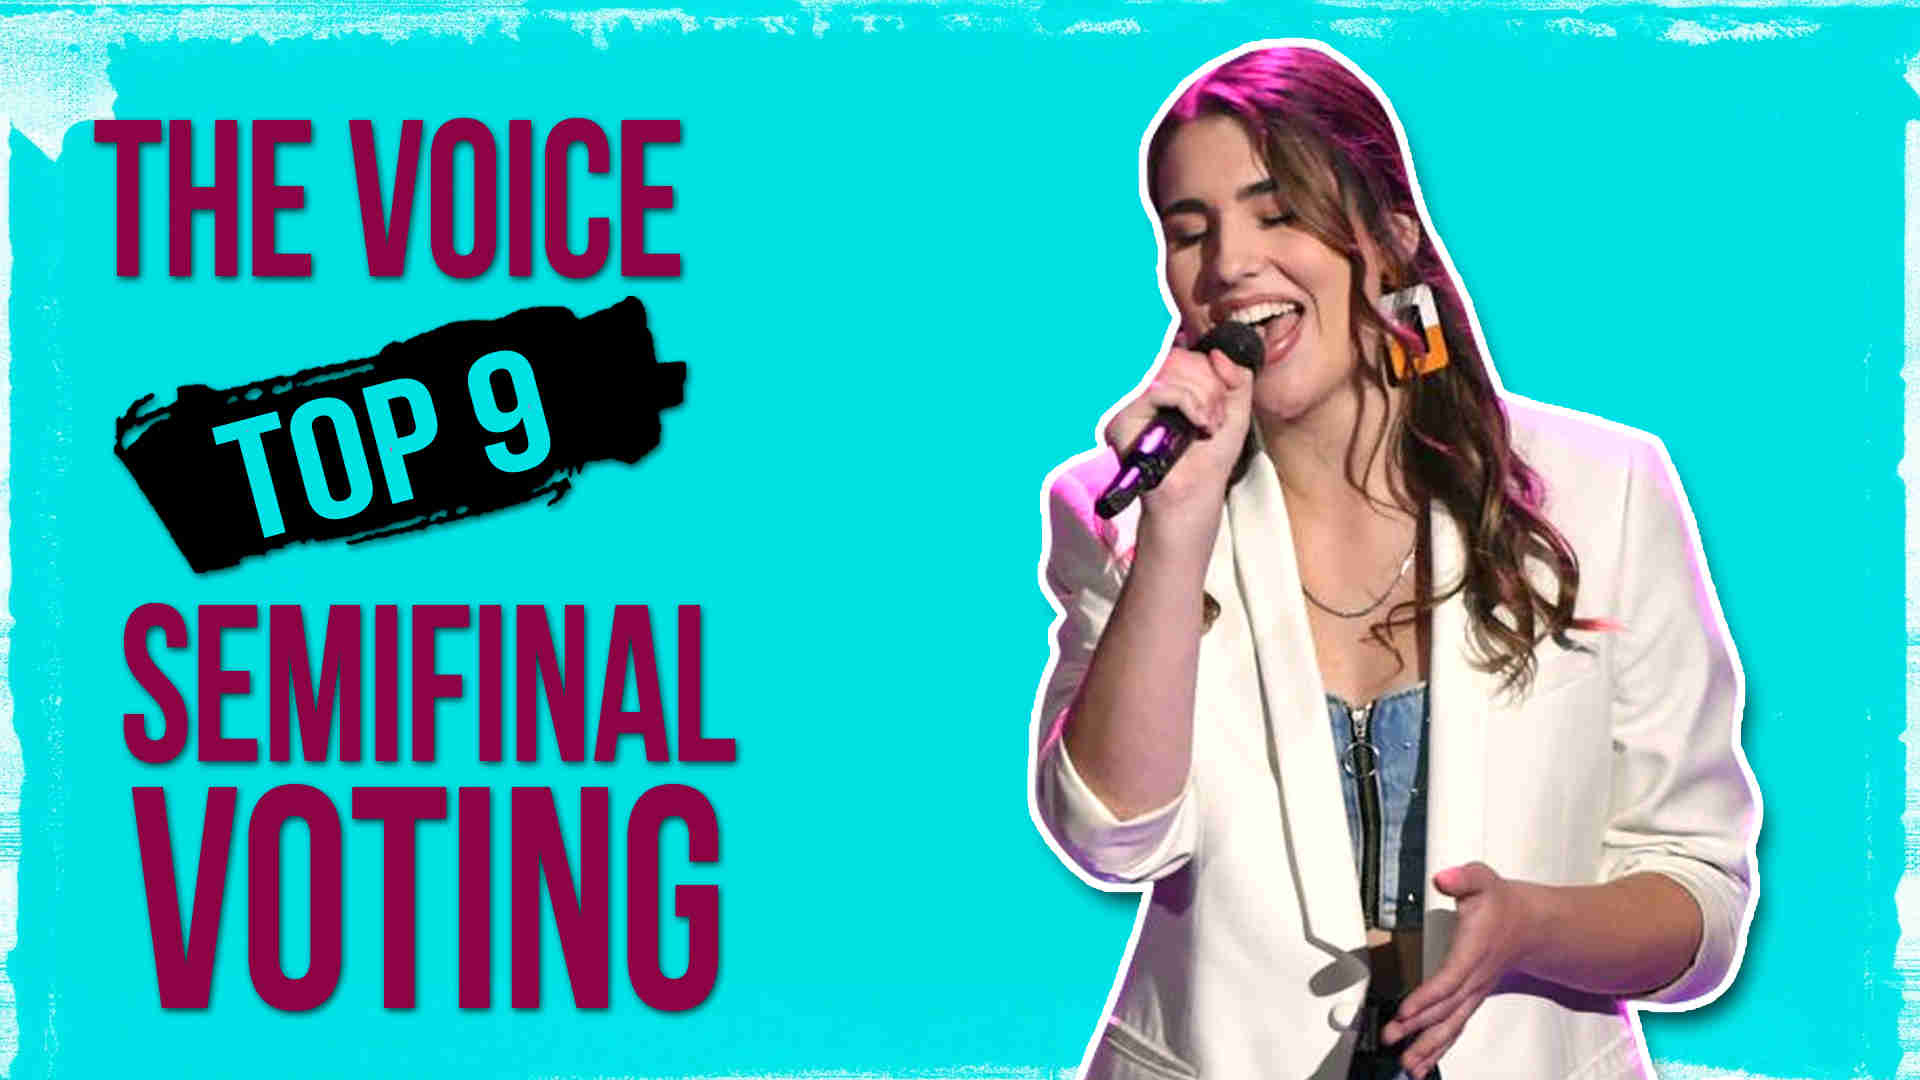 Vote Joanna Serenko The Voice 2020 Semifinals Voting Tonight on 11 May 2020